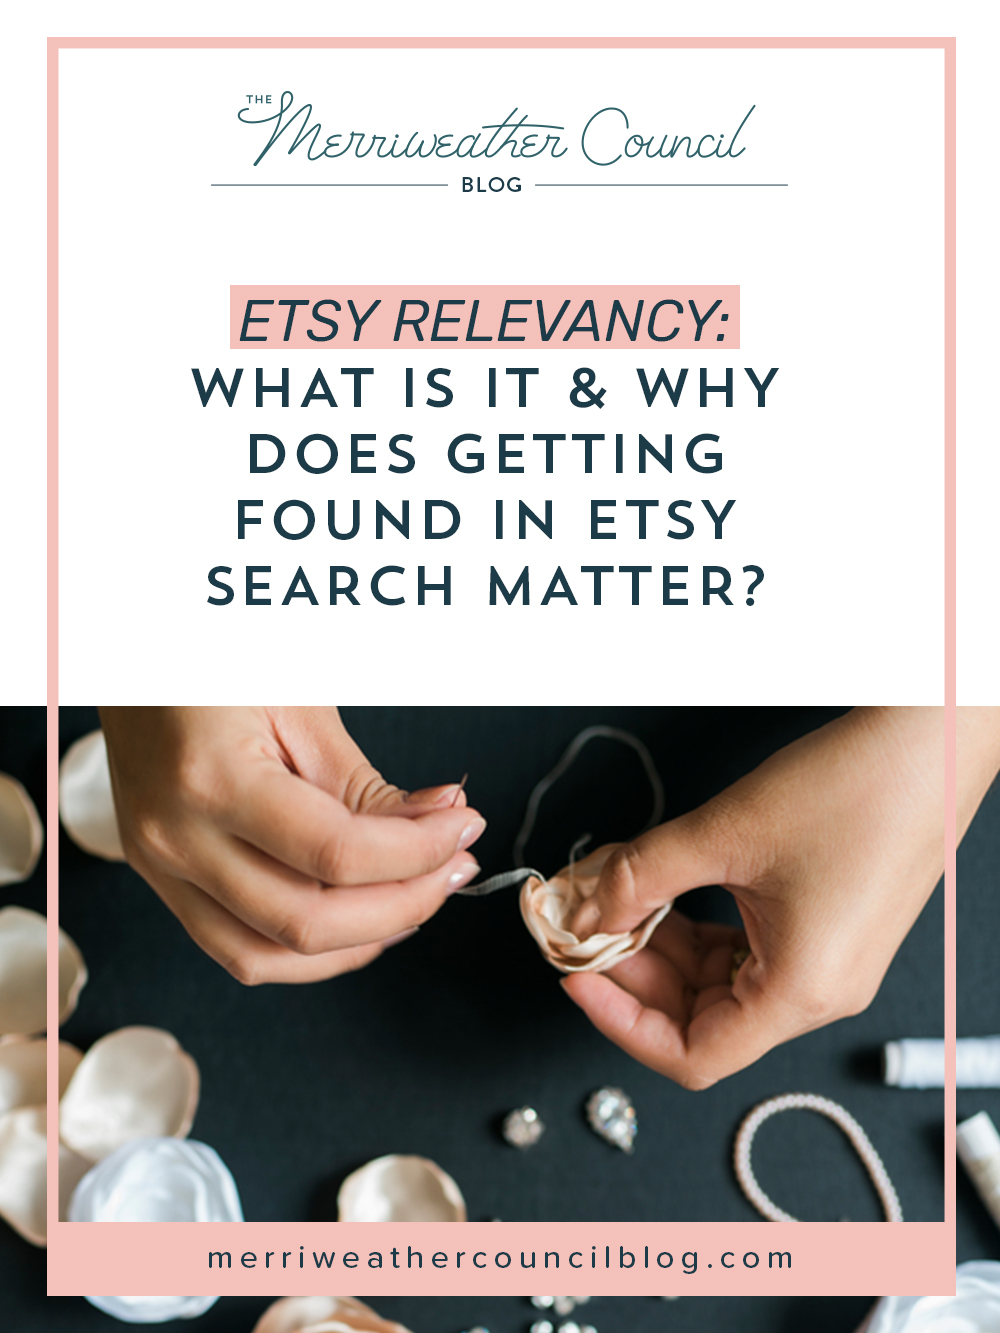 etsy relevancy explained   the merriweather council blog